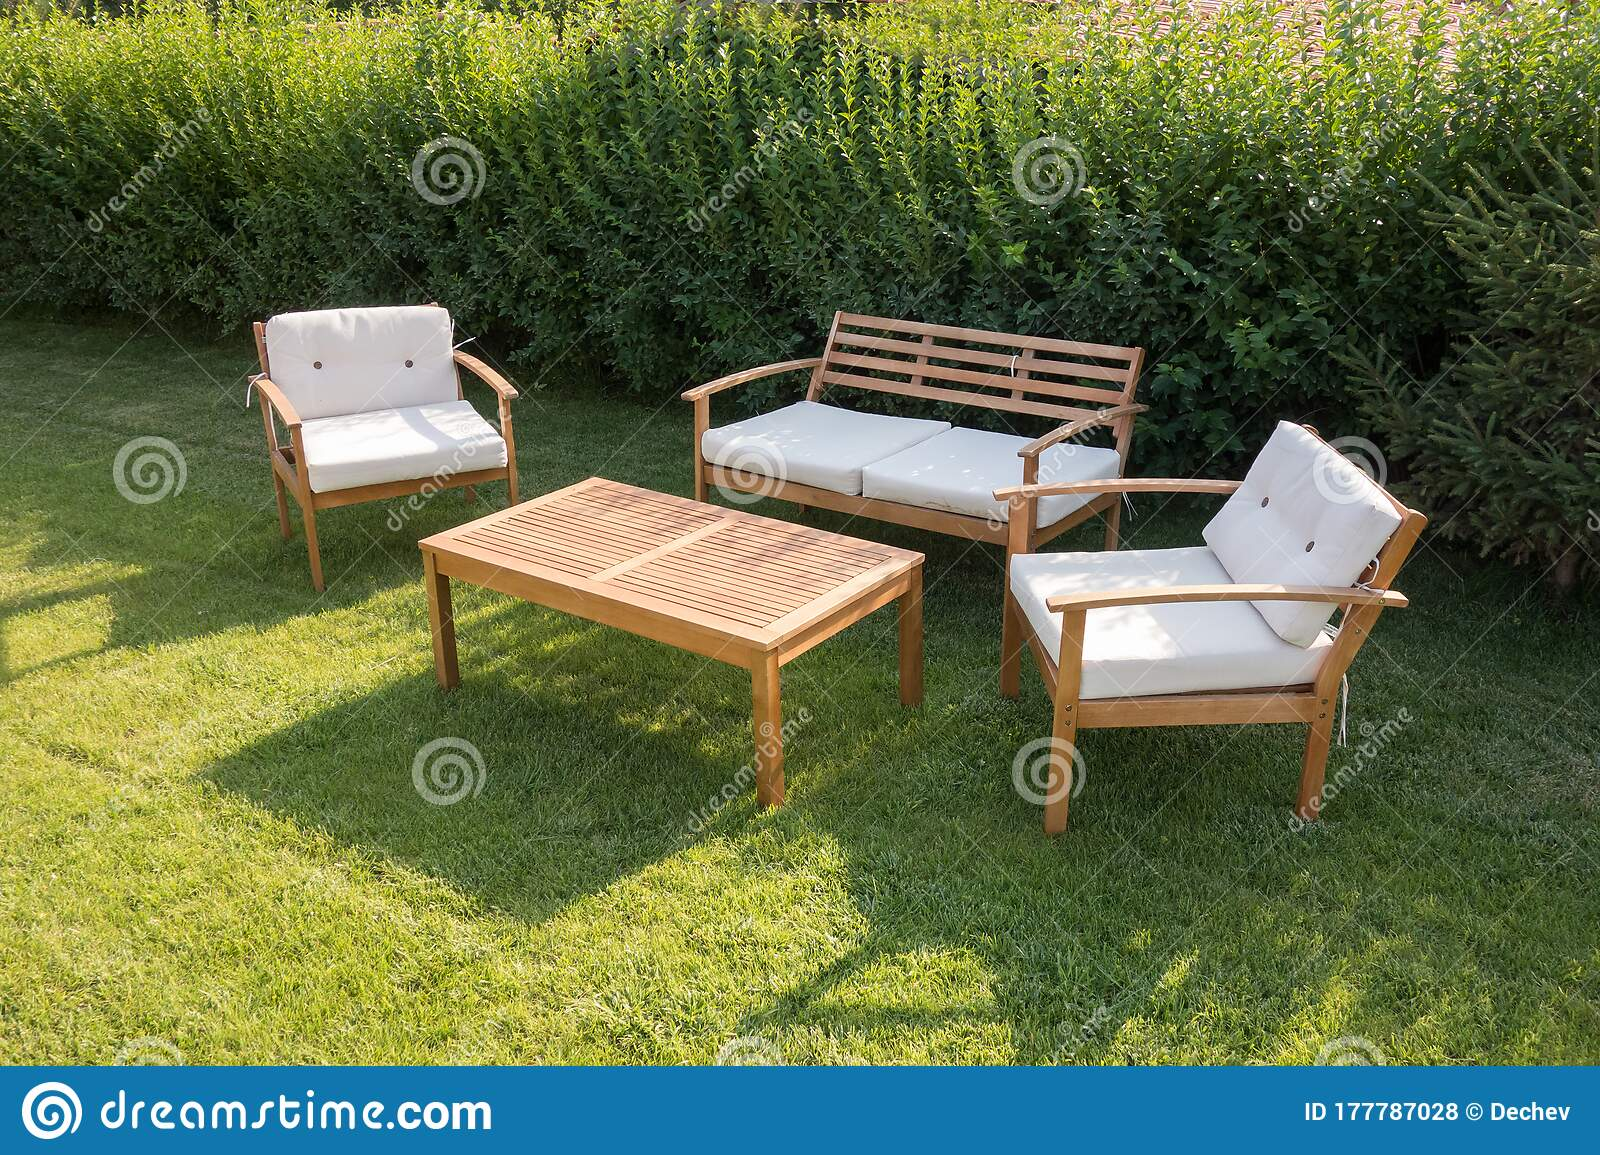 Set Of Wooden Garden Furniture. Table And Chairs With Pillows At